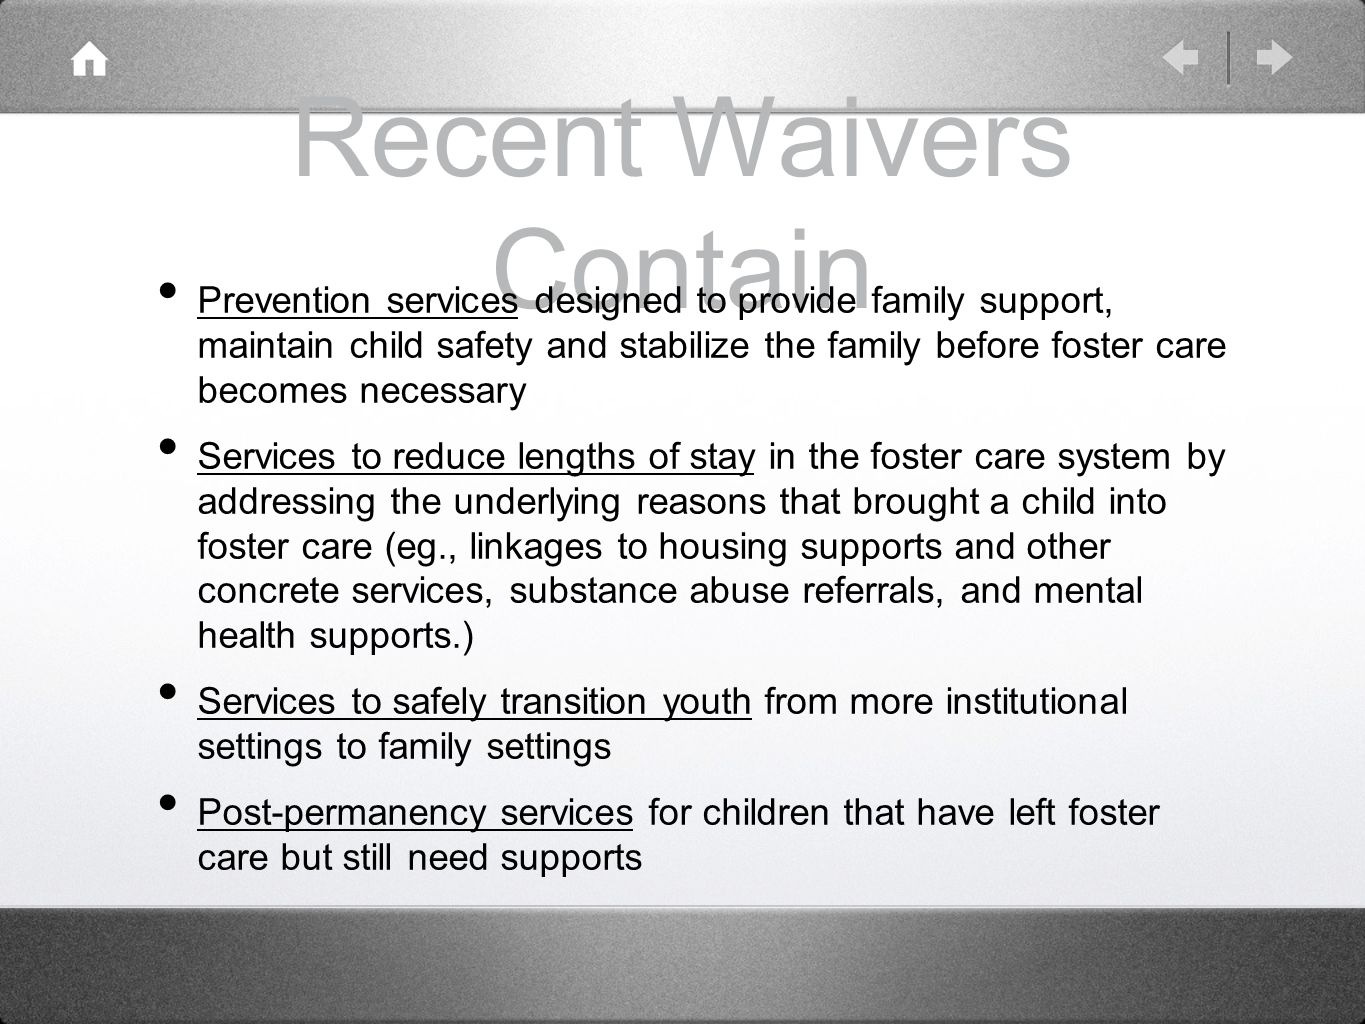 Recent Waivers Contain Prevention services designed to provide family support, maintain child safety and stabilize the family before foster care becomes necessary Services to reduce lengths of stay in the foster care system by addressing the underlying reasons that brought a child into foster care (eg., linkages to housing supports and other concrete services, substance abuse referrals, and mental health supports.) Services to safely transition youth from more institutional settings to family settings Post-permanency services for children that have left foster care but still need supports